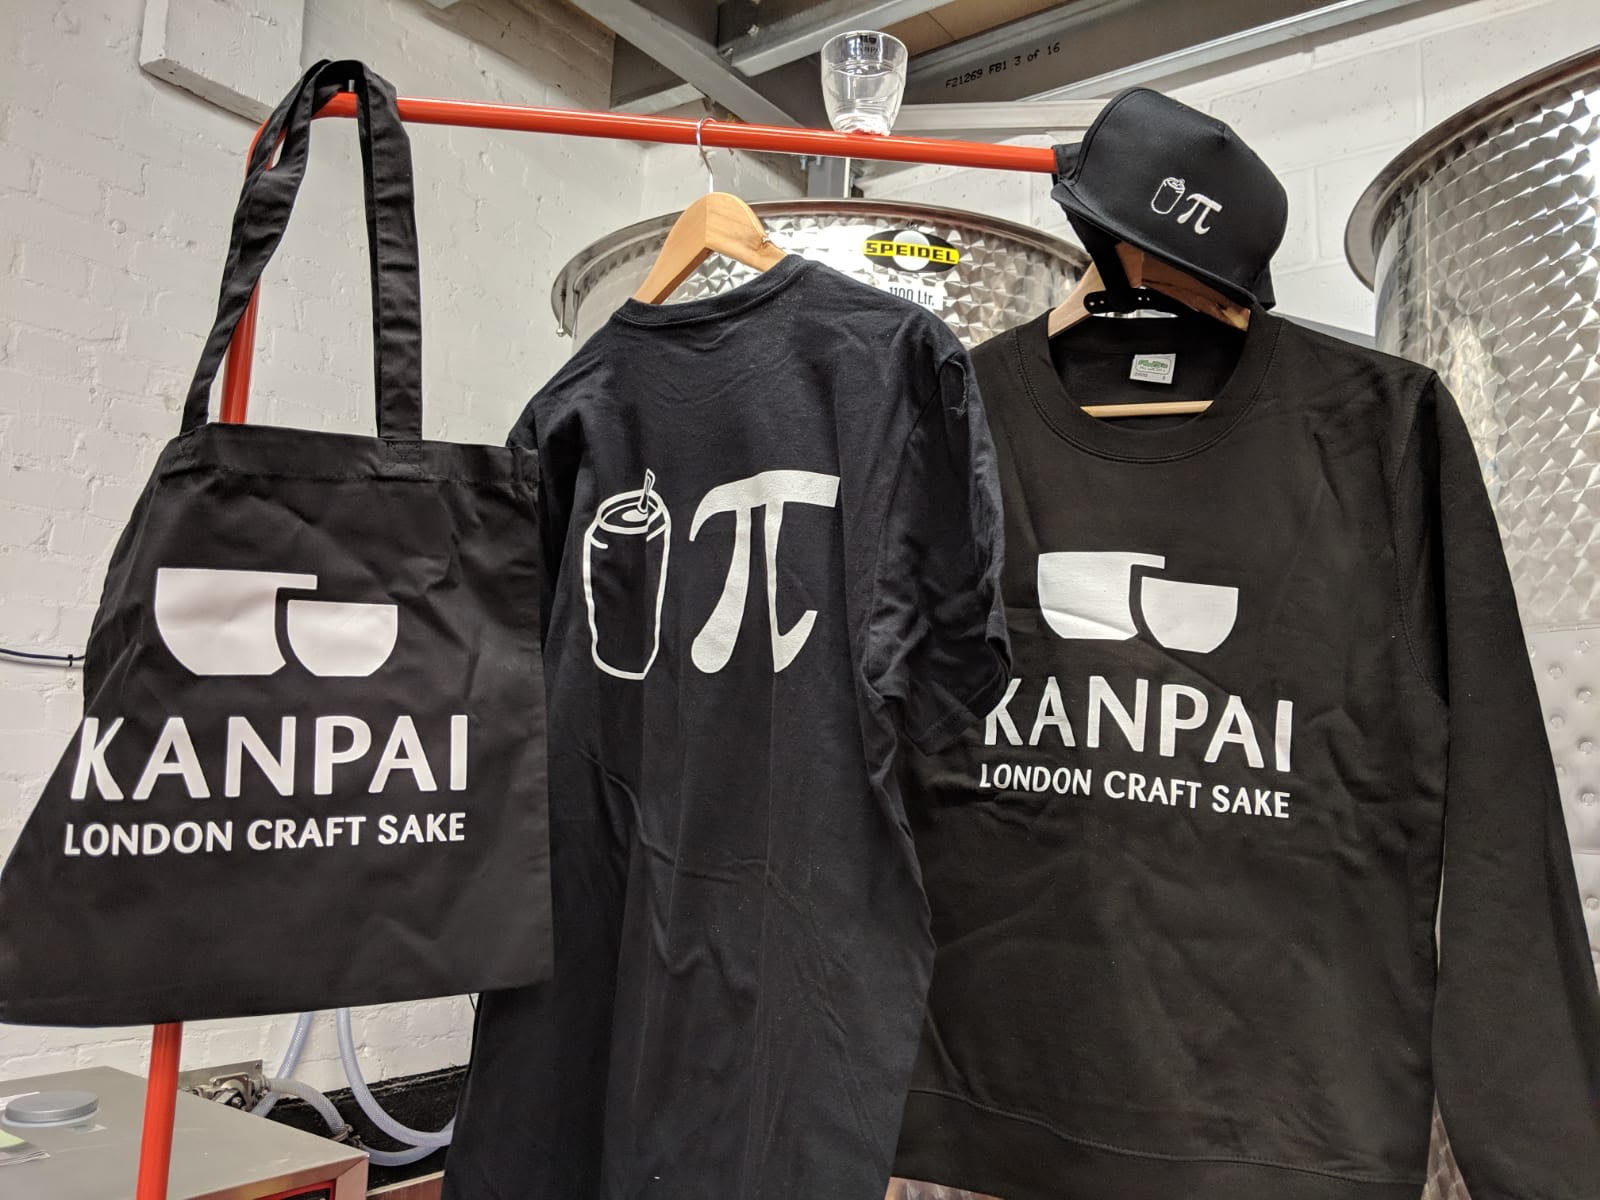 MERCH! - Sweatshirt £30T-shirt £20Cap £15Tote £10Glass £5Only available at the bar.